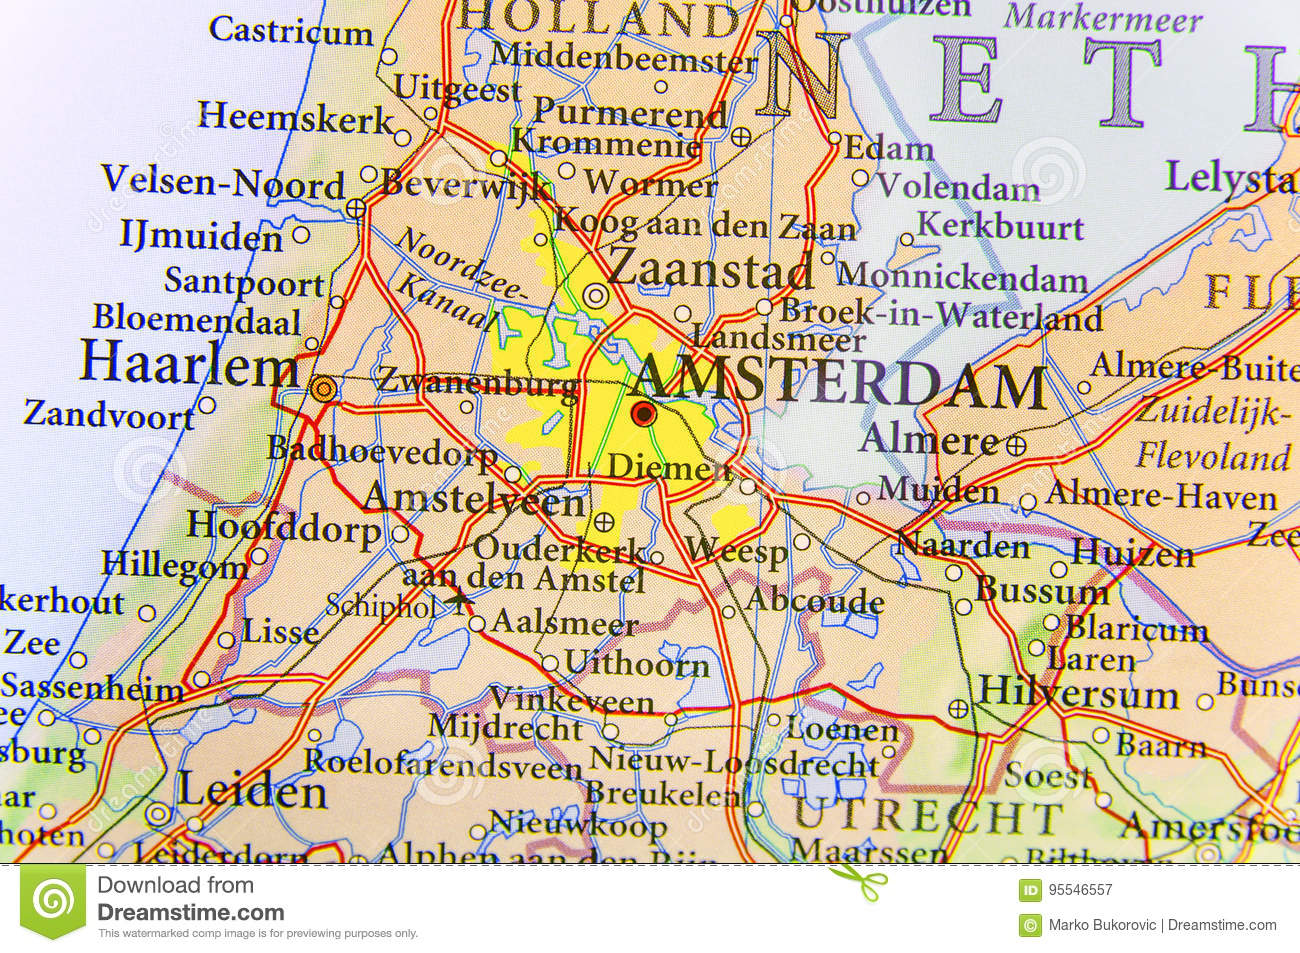 Cartina Amsterdam Download.Geographic Map Of European Country Netherlands With Amsterdam